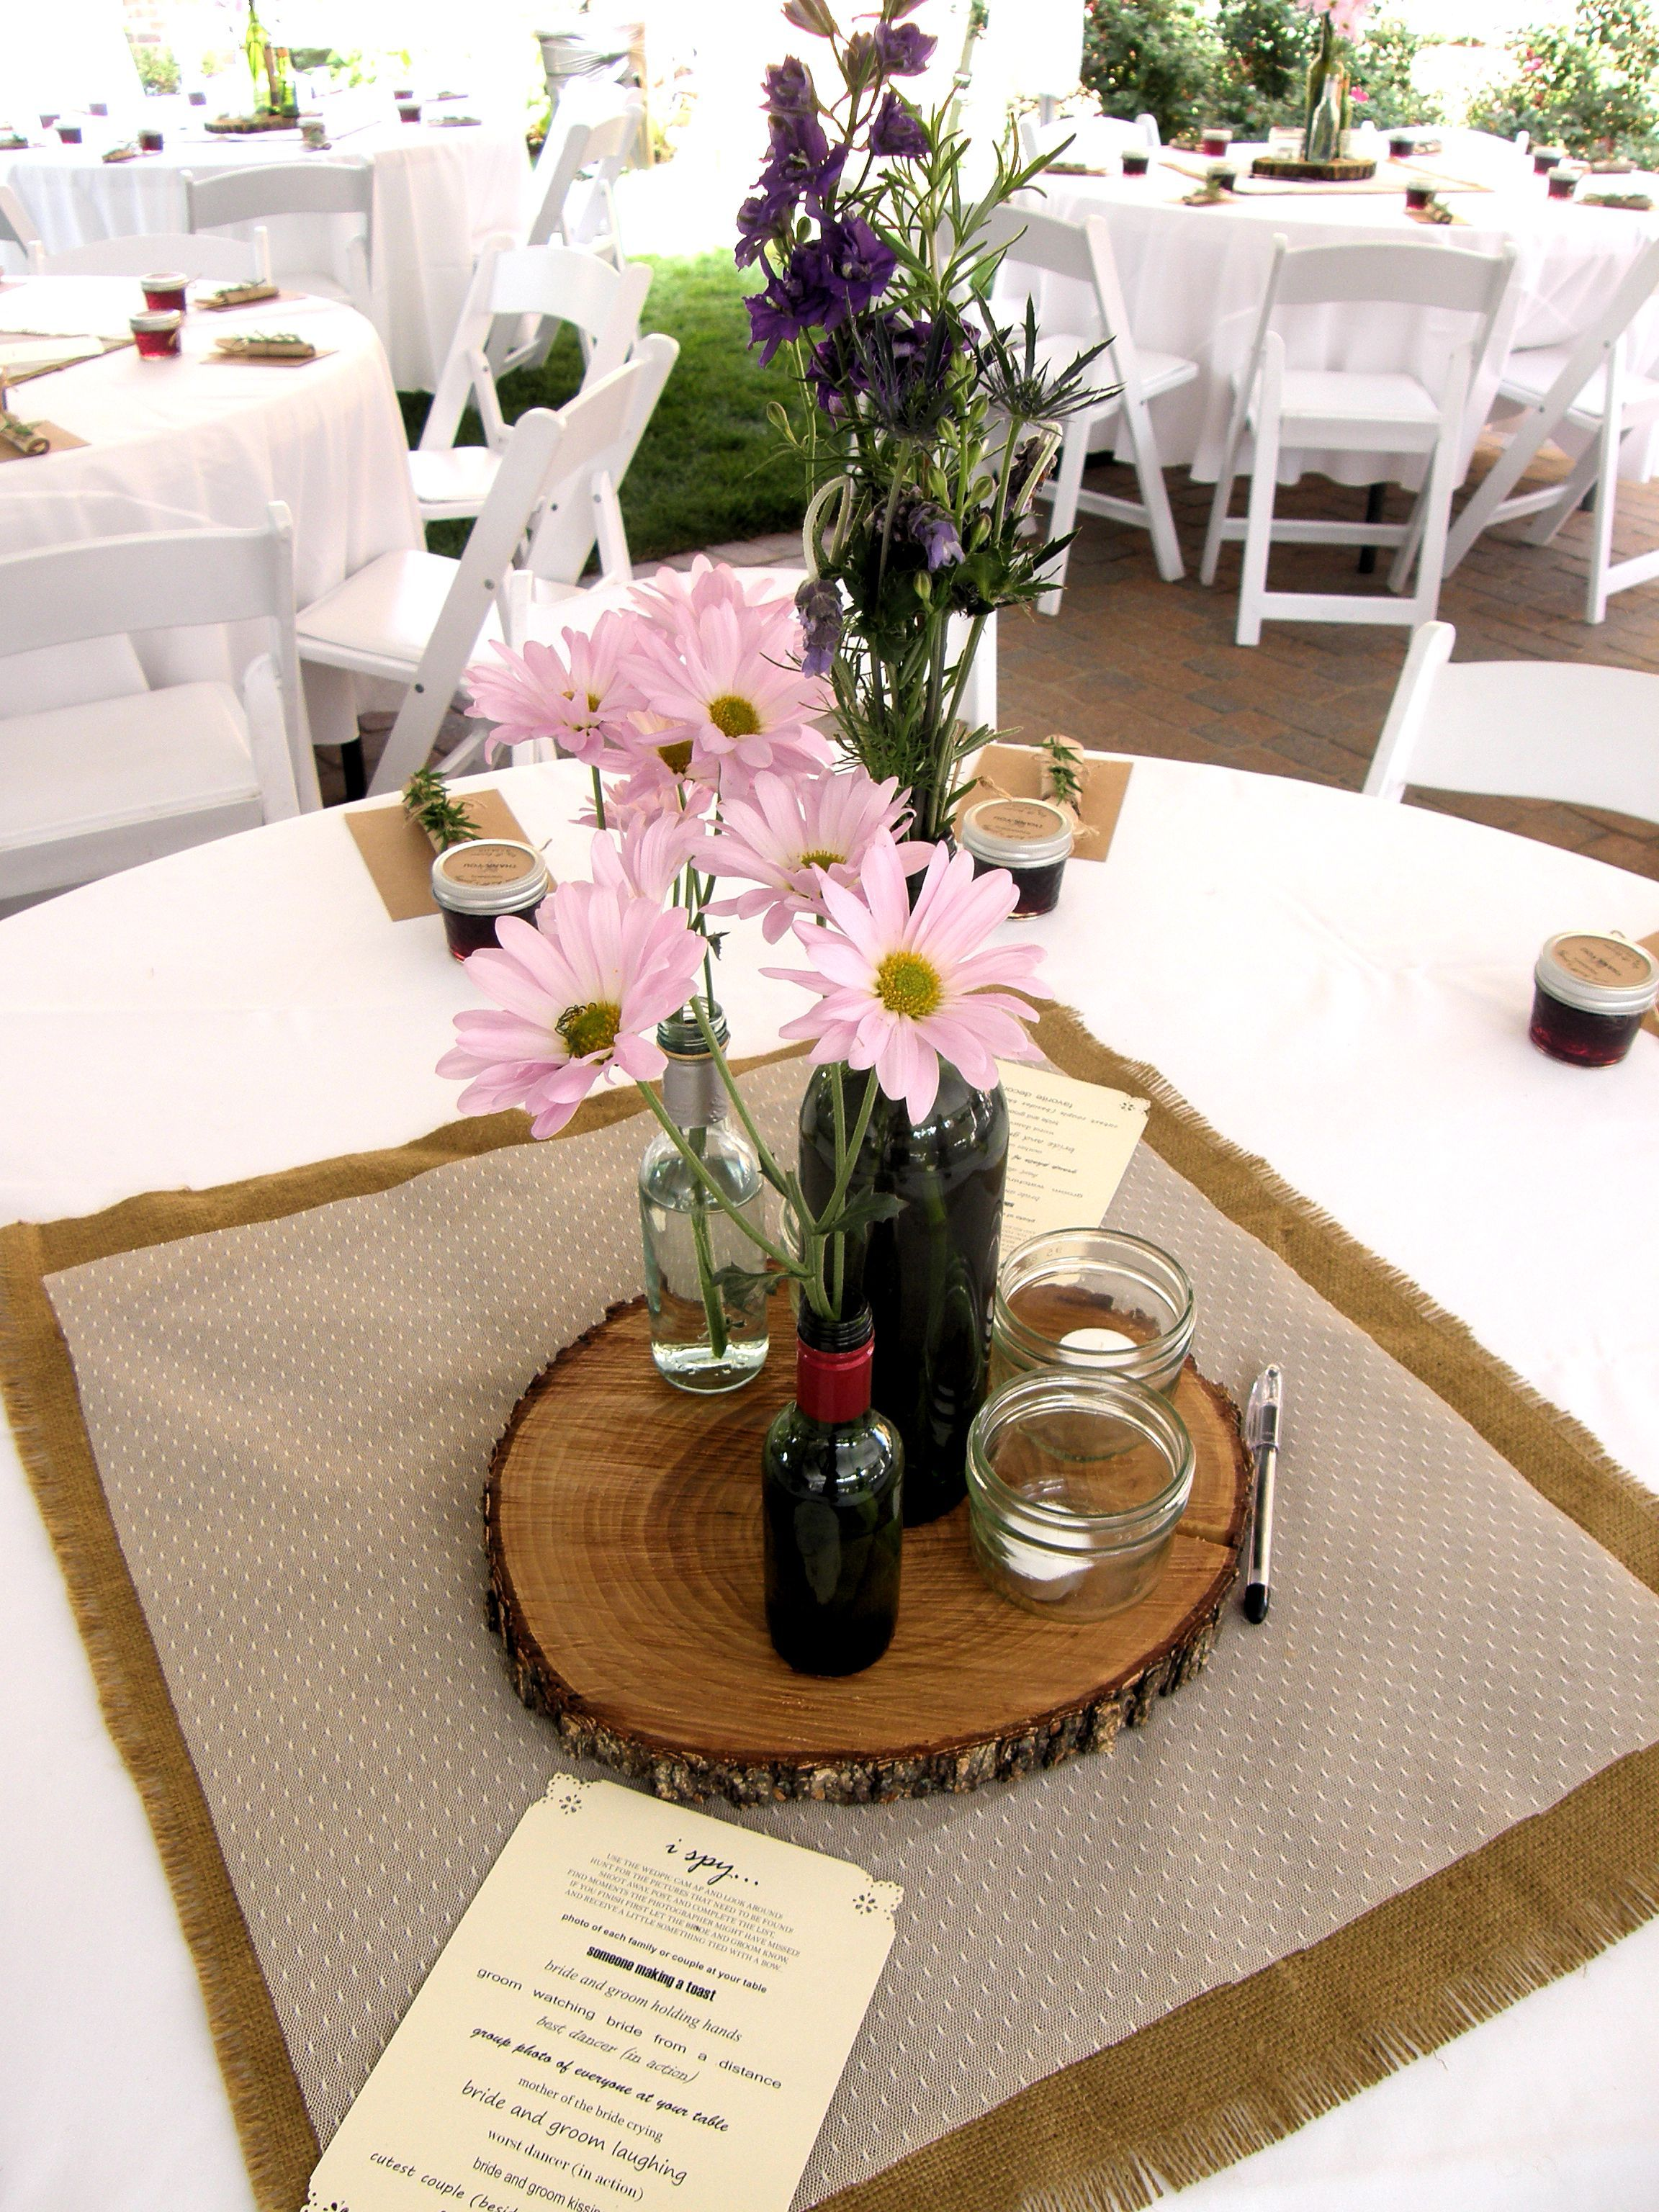 Wooden slab centerpieces with old wine bottles labeled